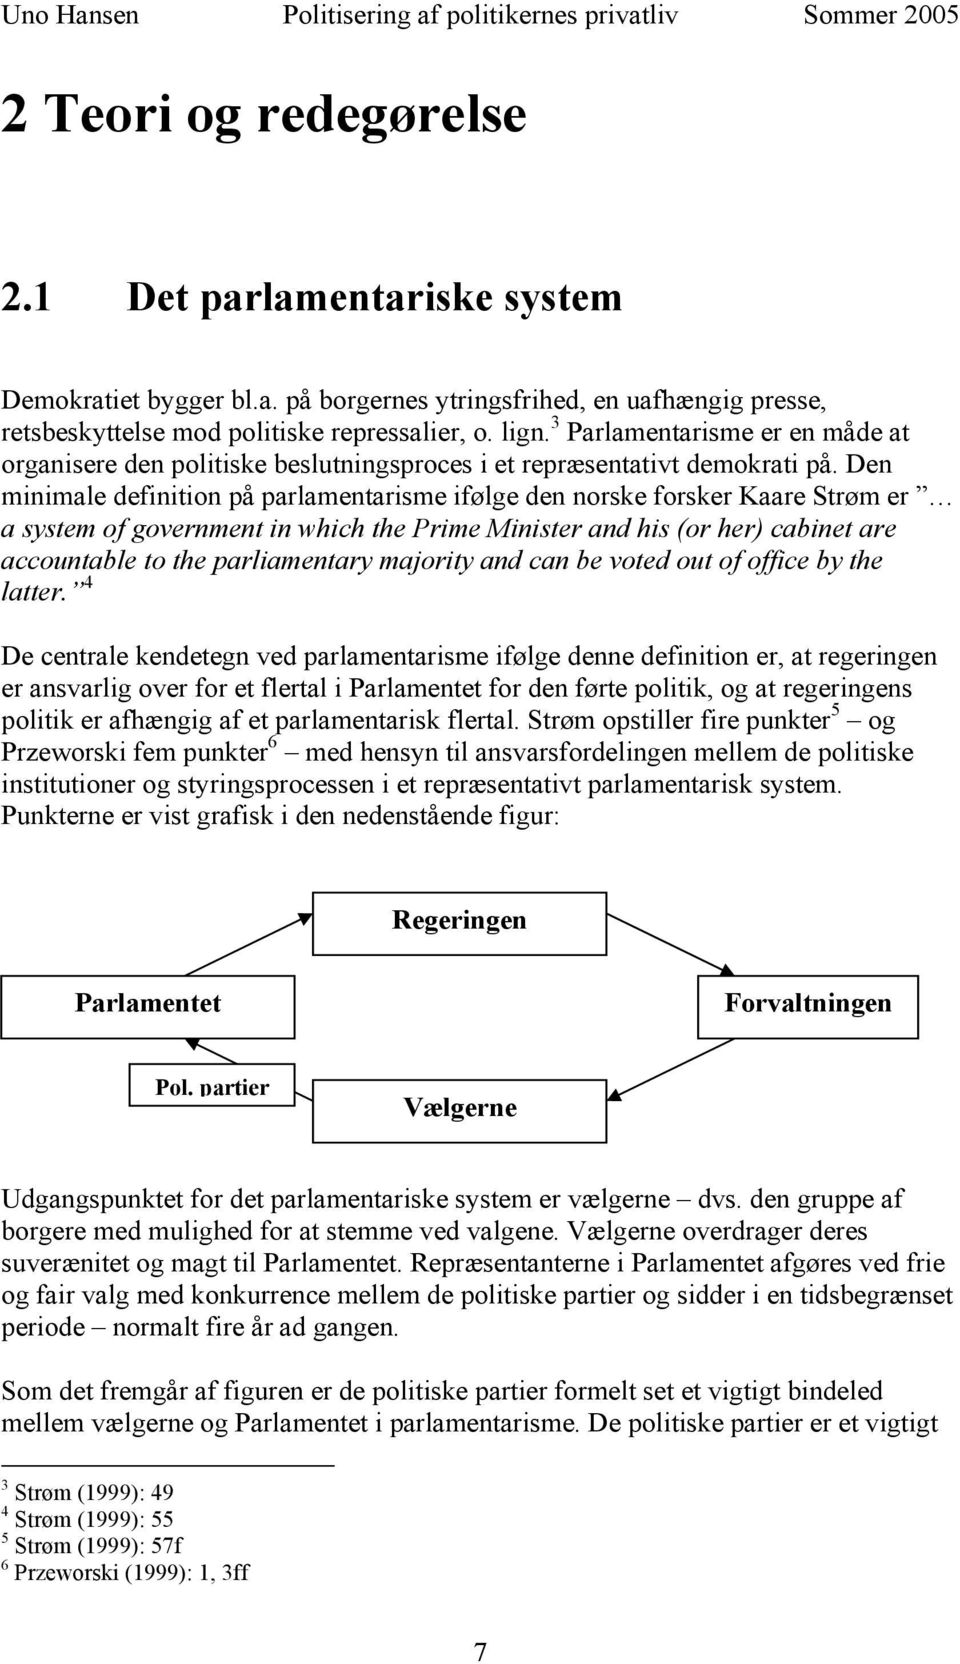 Den minimale definition på parlamentarisme ifølge den norske forsker Kaare Strøm er a system of government in which the Prime Minister and his (or her) cabinet are accountable to the parliamentary